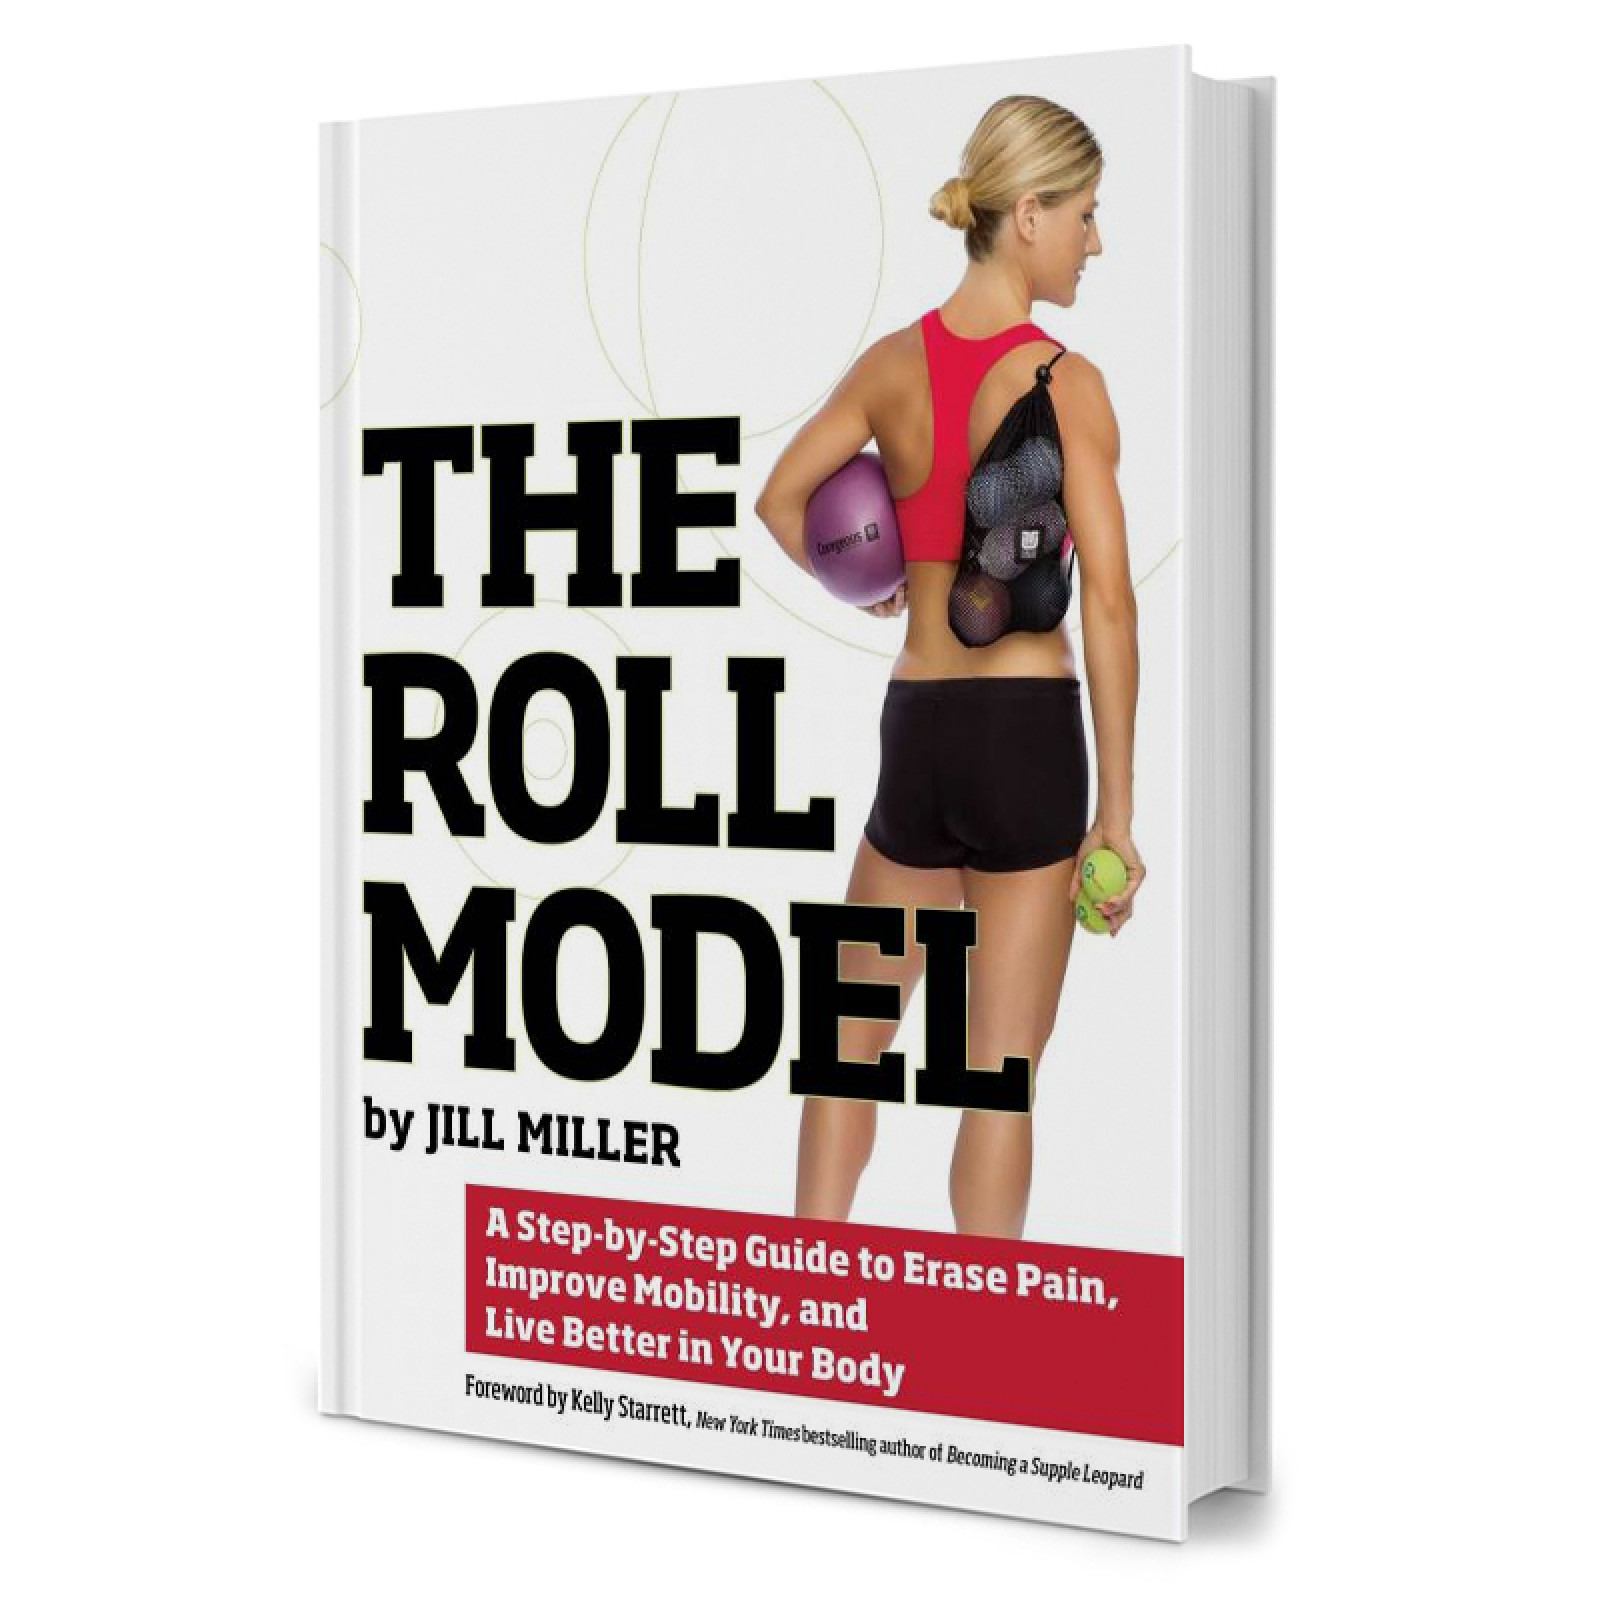 The Roll Model - A Step-by-Step Guide to Erase Pain, Improve Mobility, and Live Better in Your Body